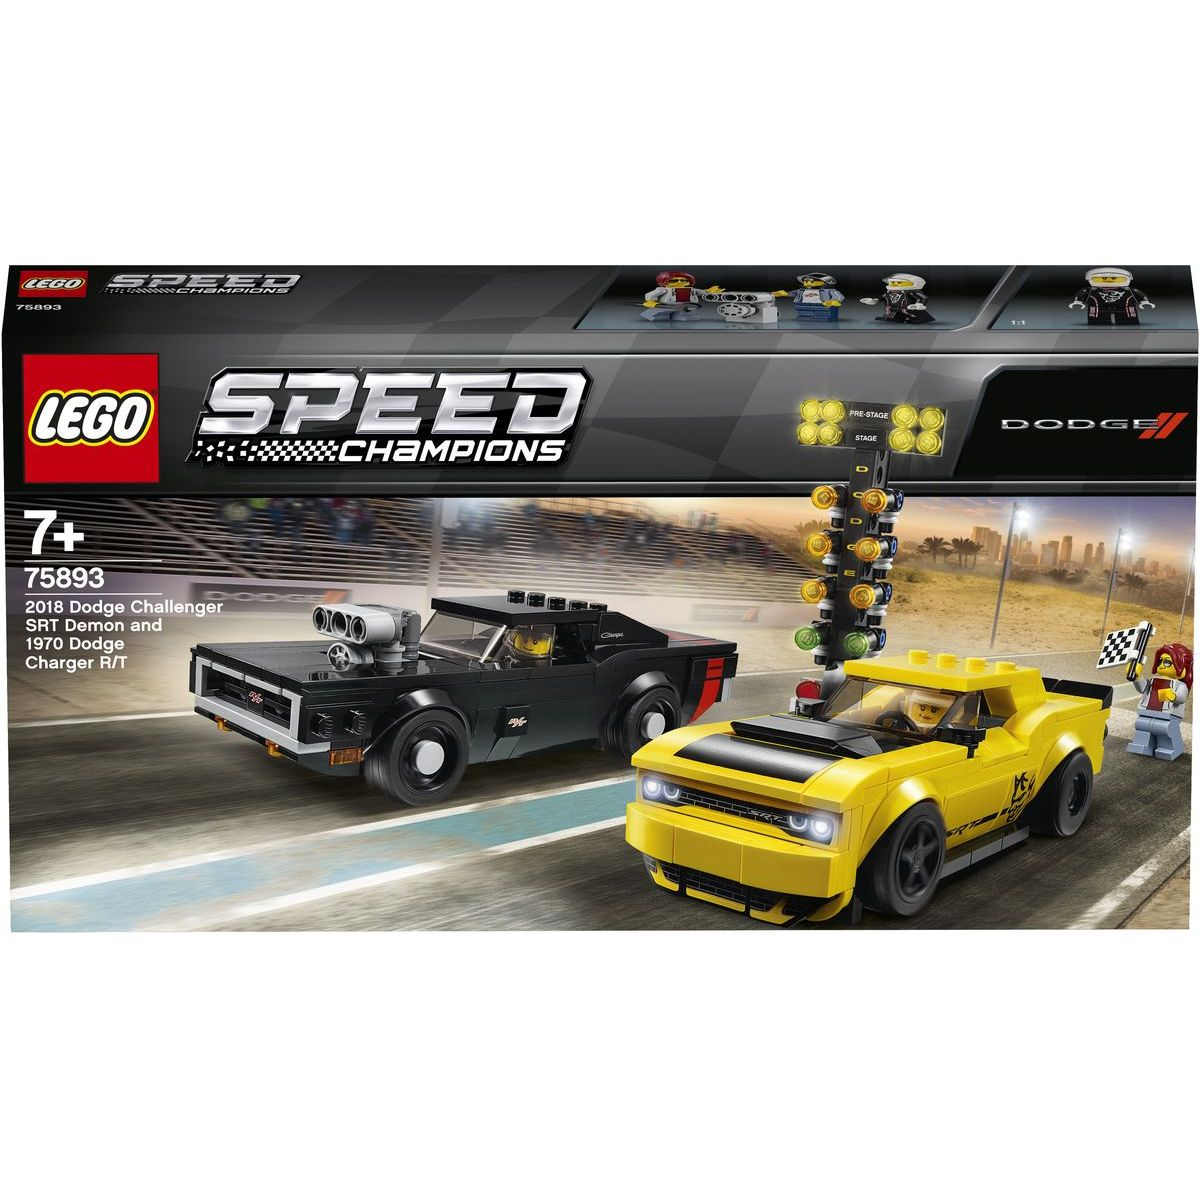 LEGO Speed Champions 75893 2018 Dodge Challenger SRT Demon a 1970